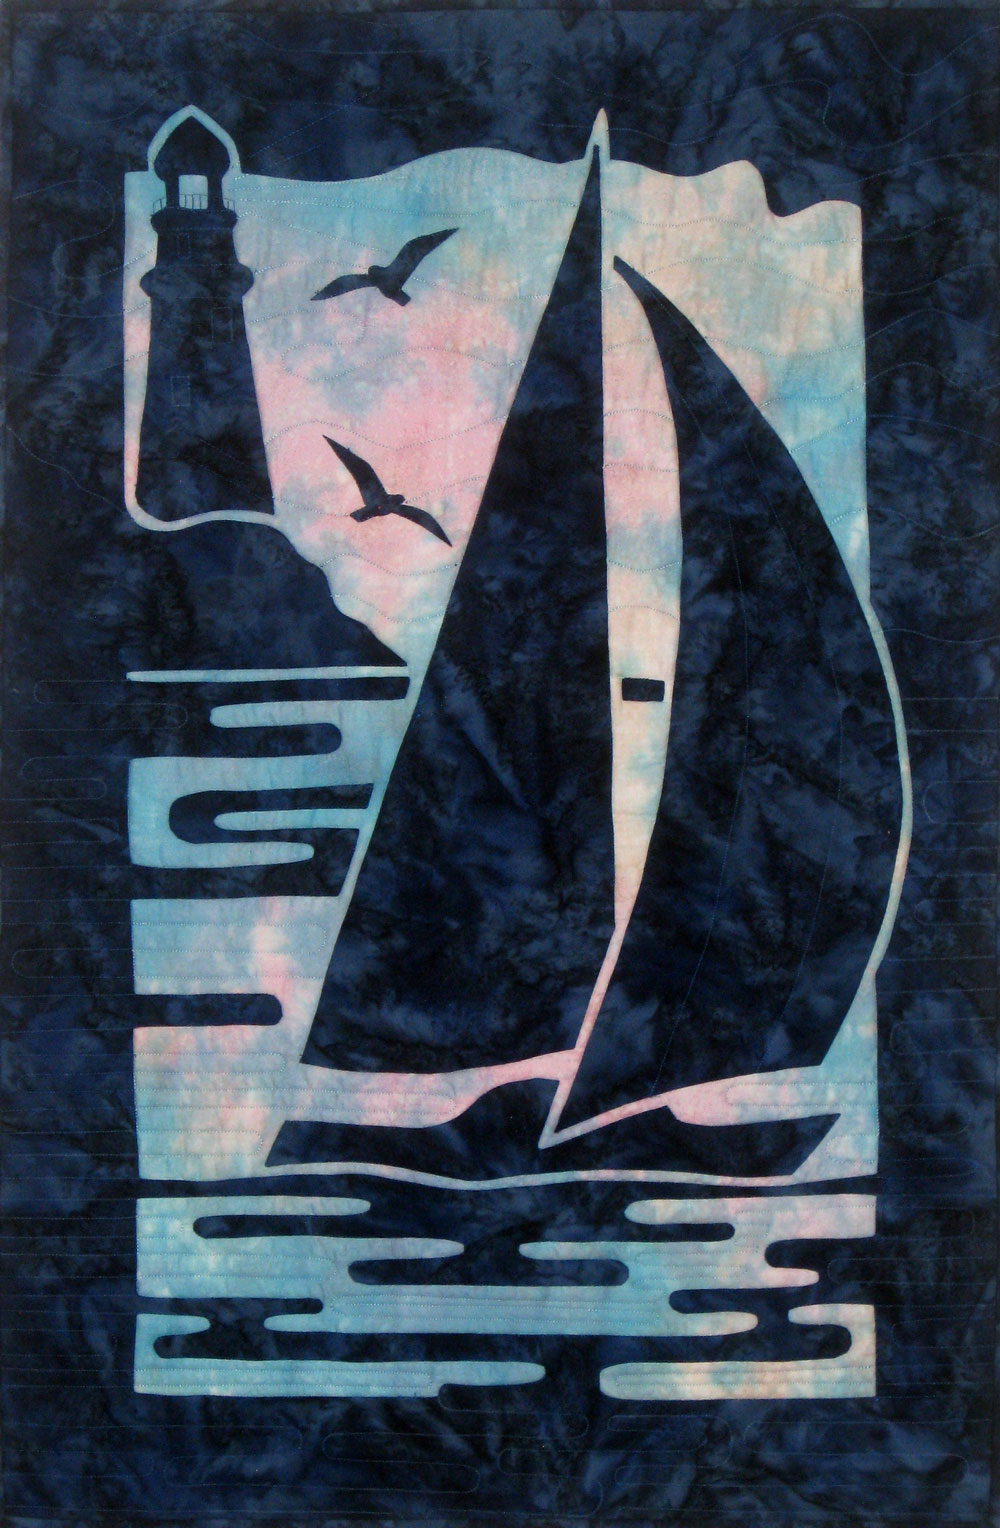 Sailboat w seagulls, Melinda Sword